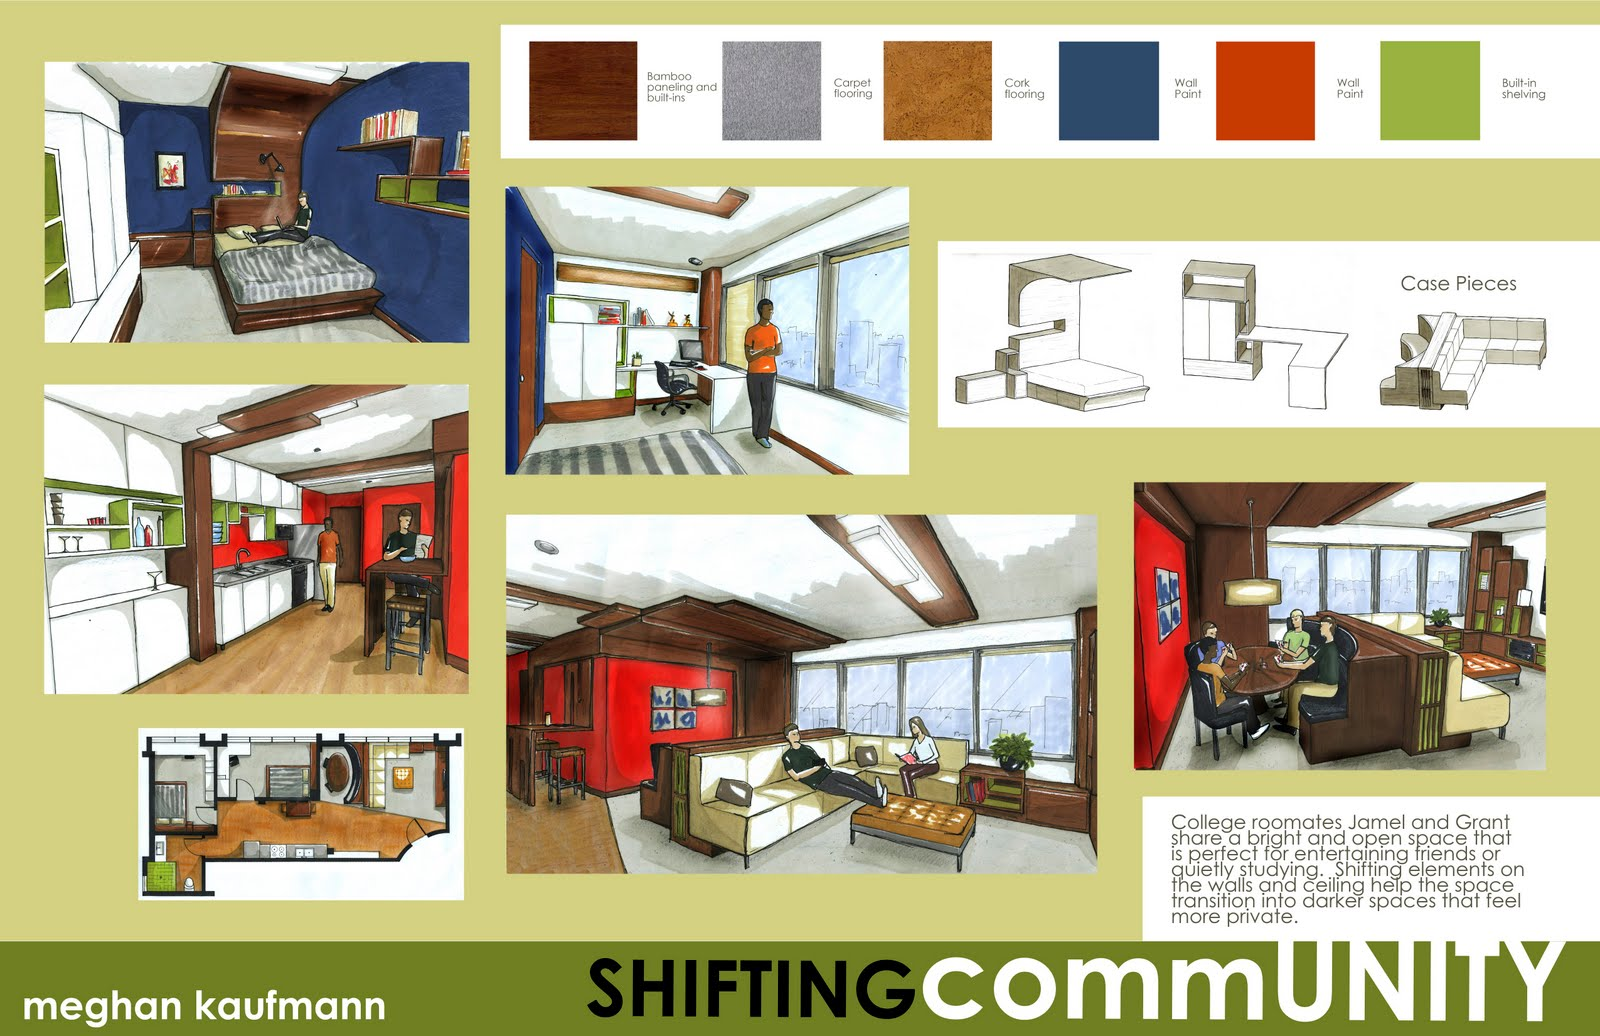 1000 images about boards presentations inspiration on - Interior design presentation layout ...